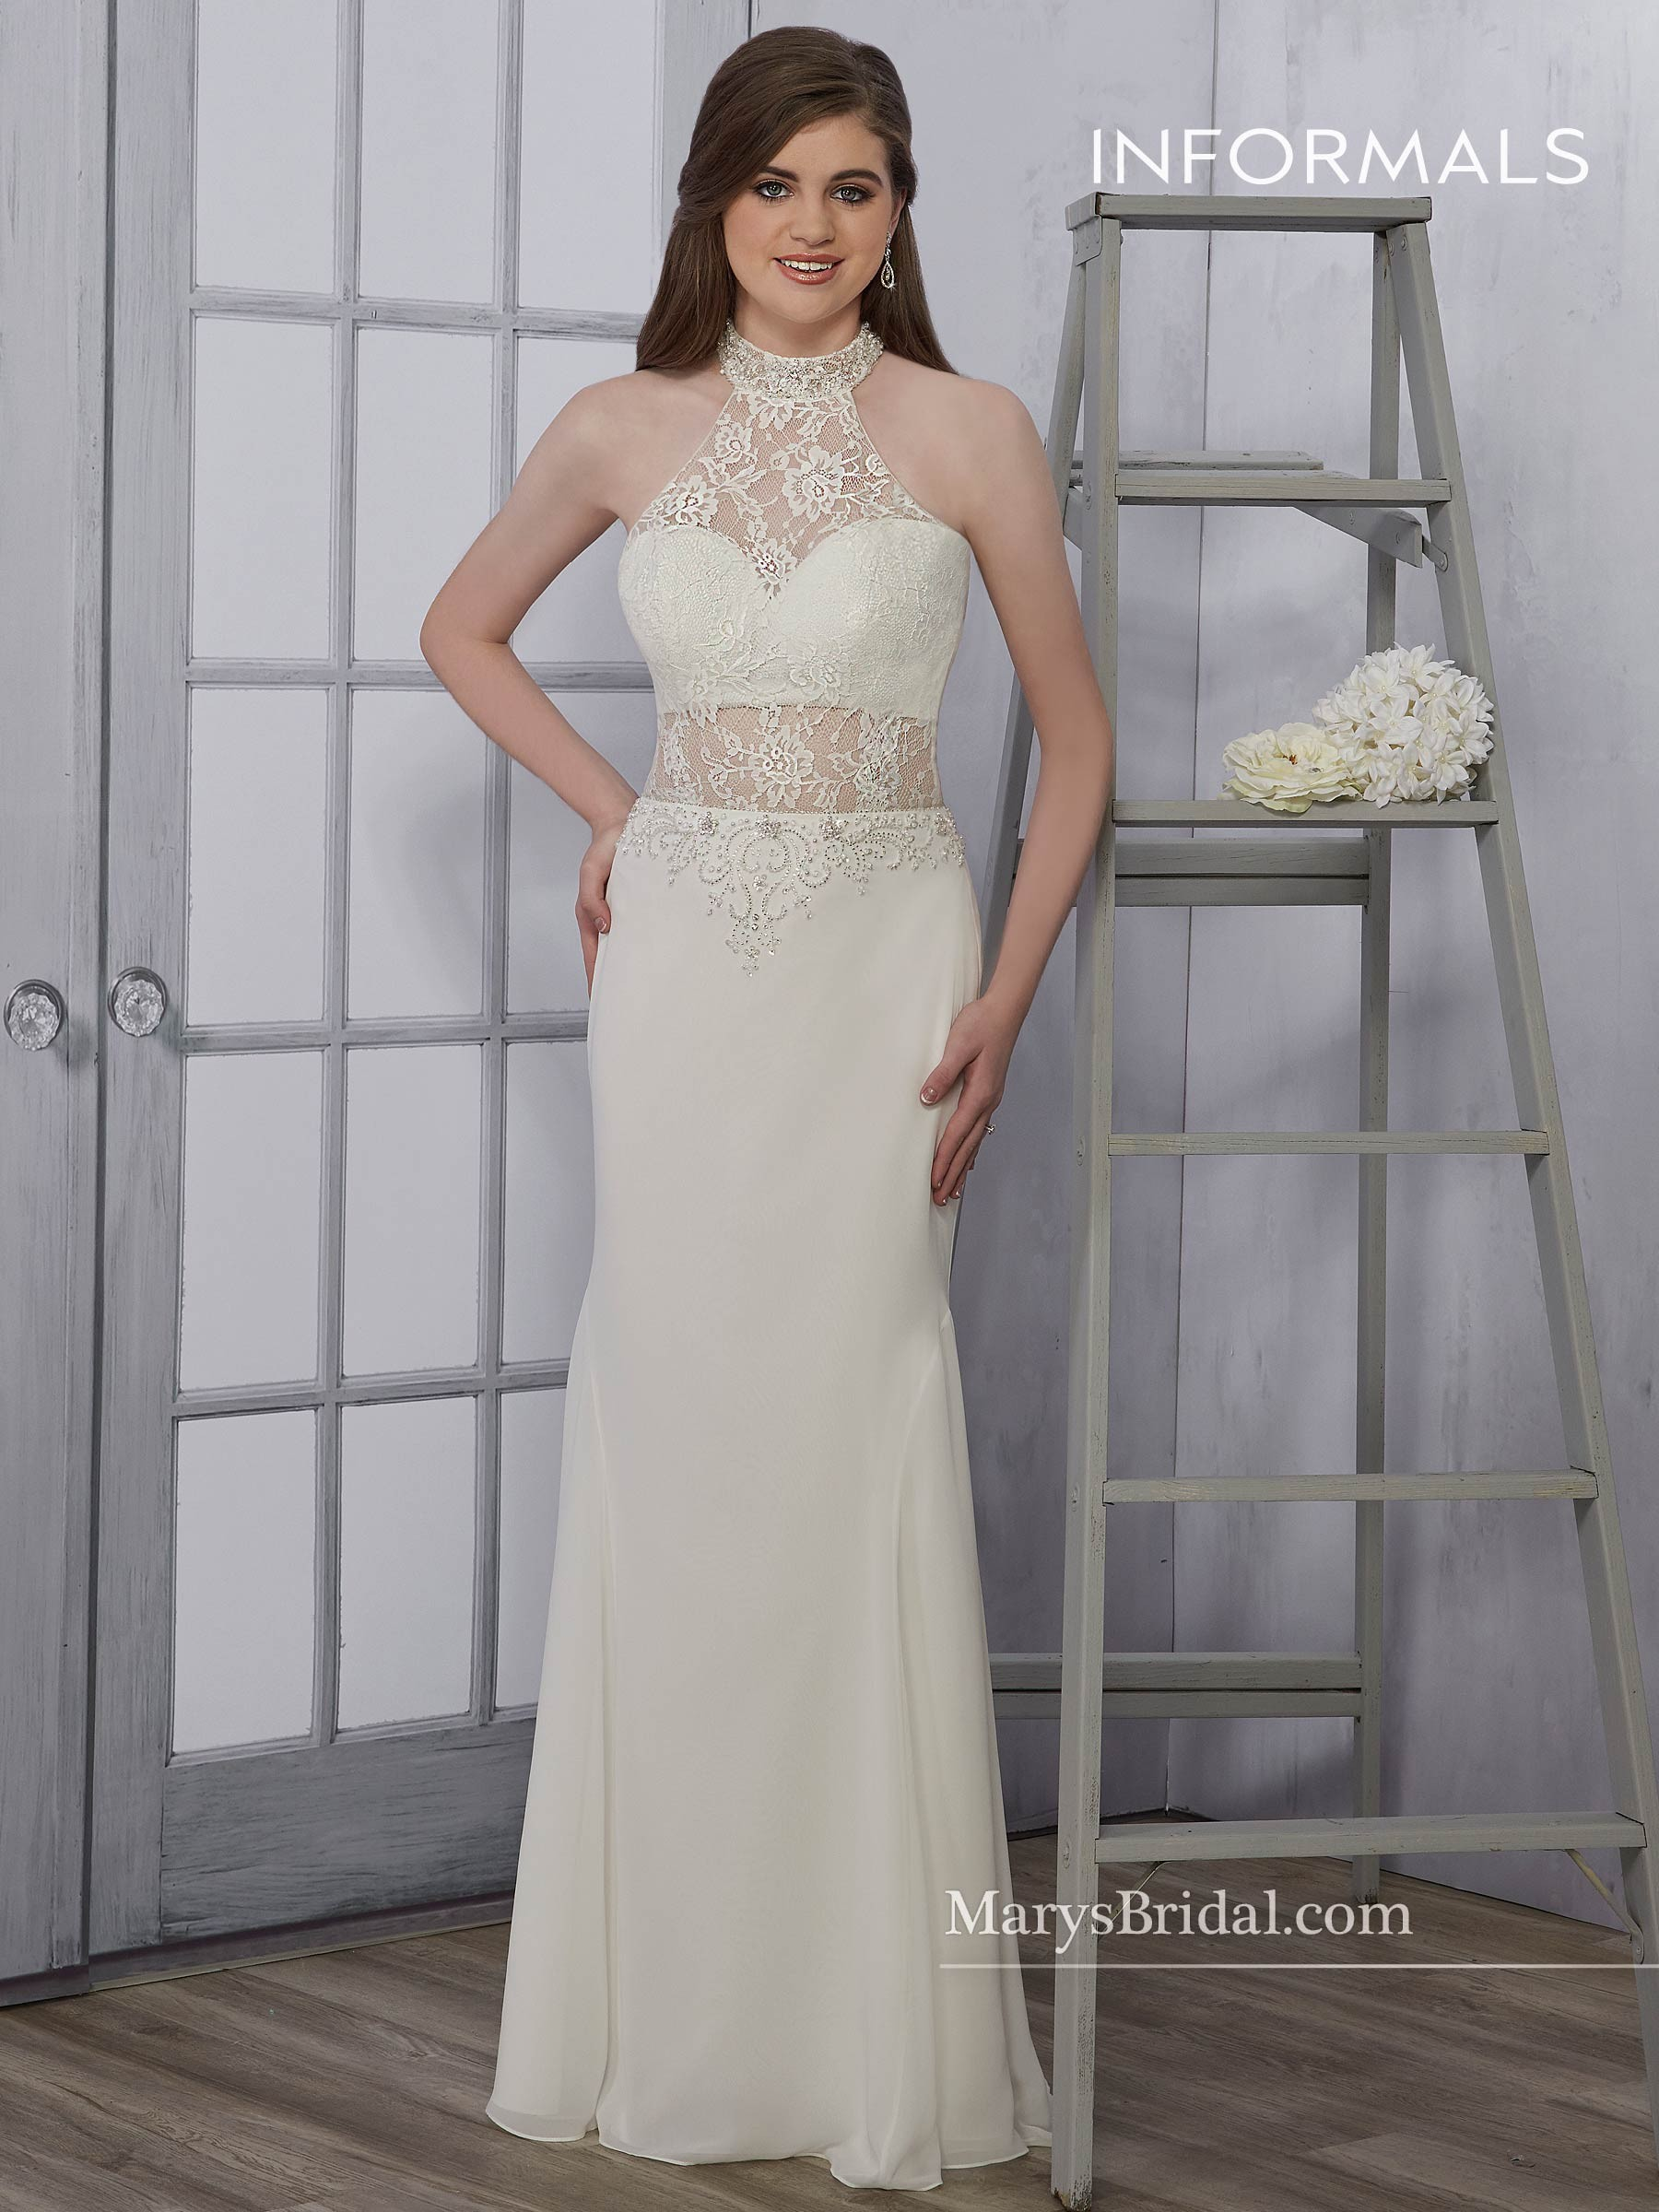 Mary's Bridal Informal 2683 - Clearance Price : 550$